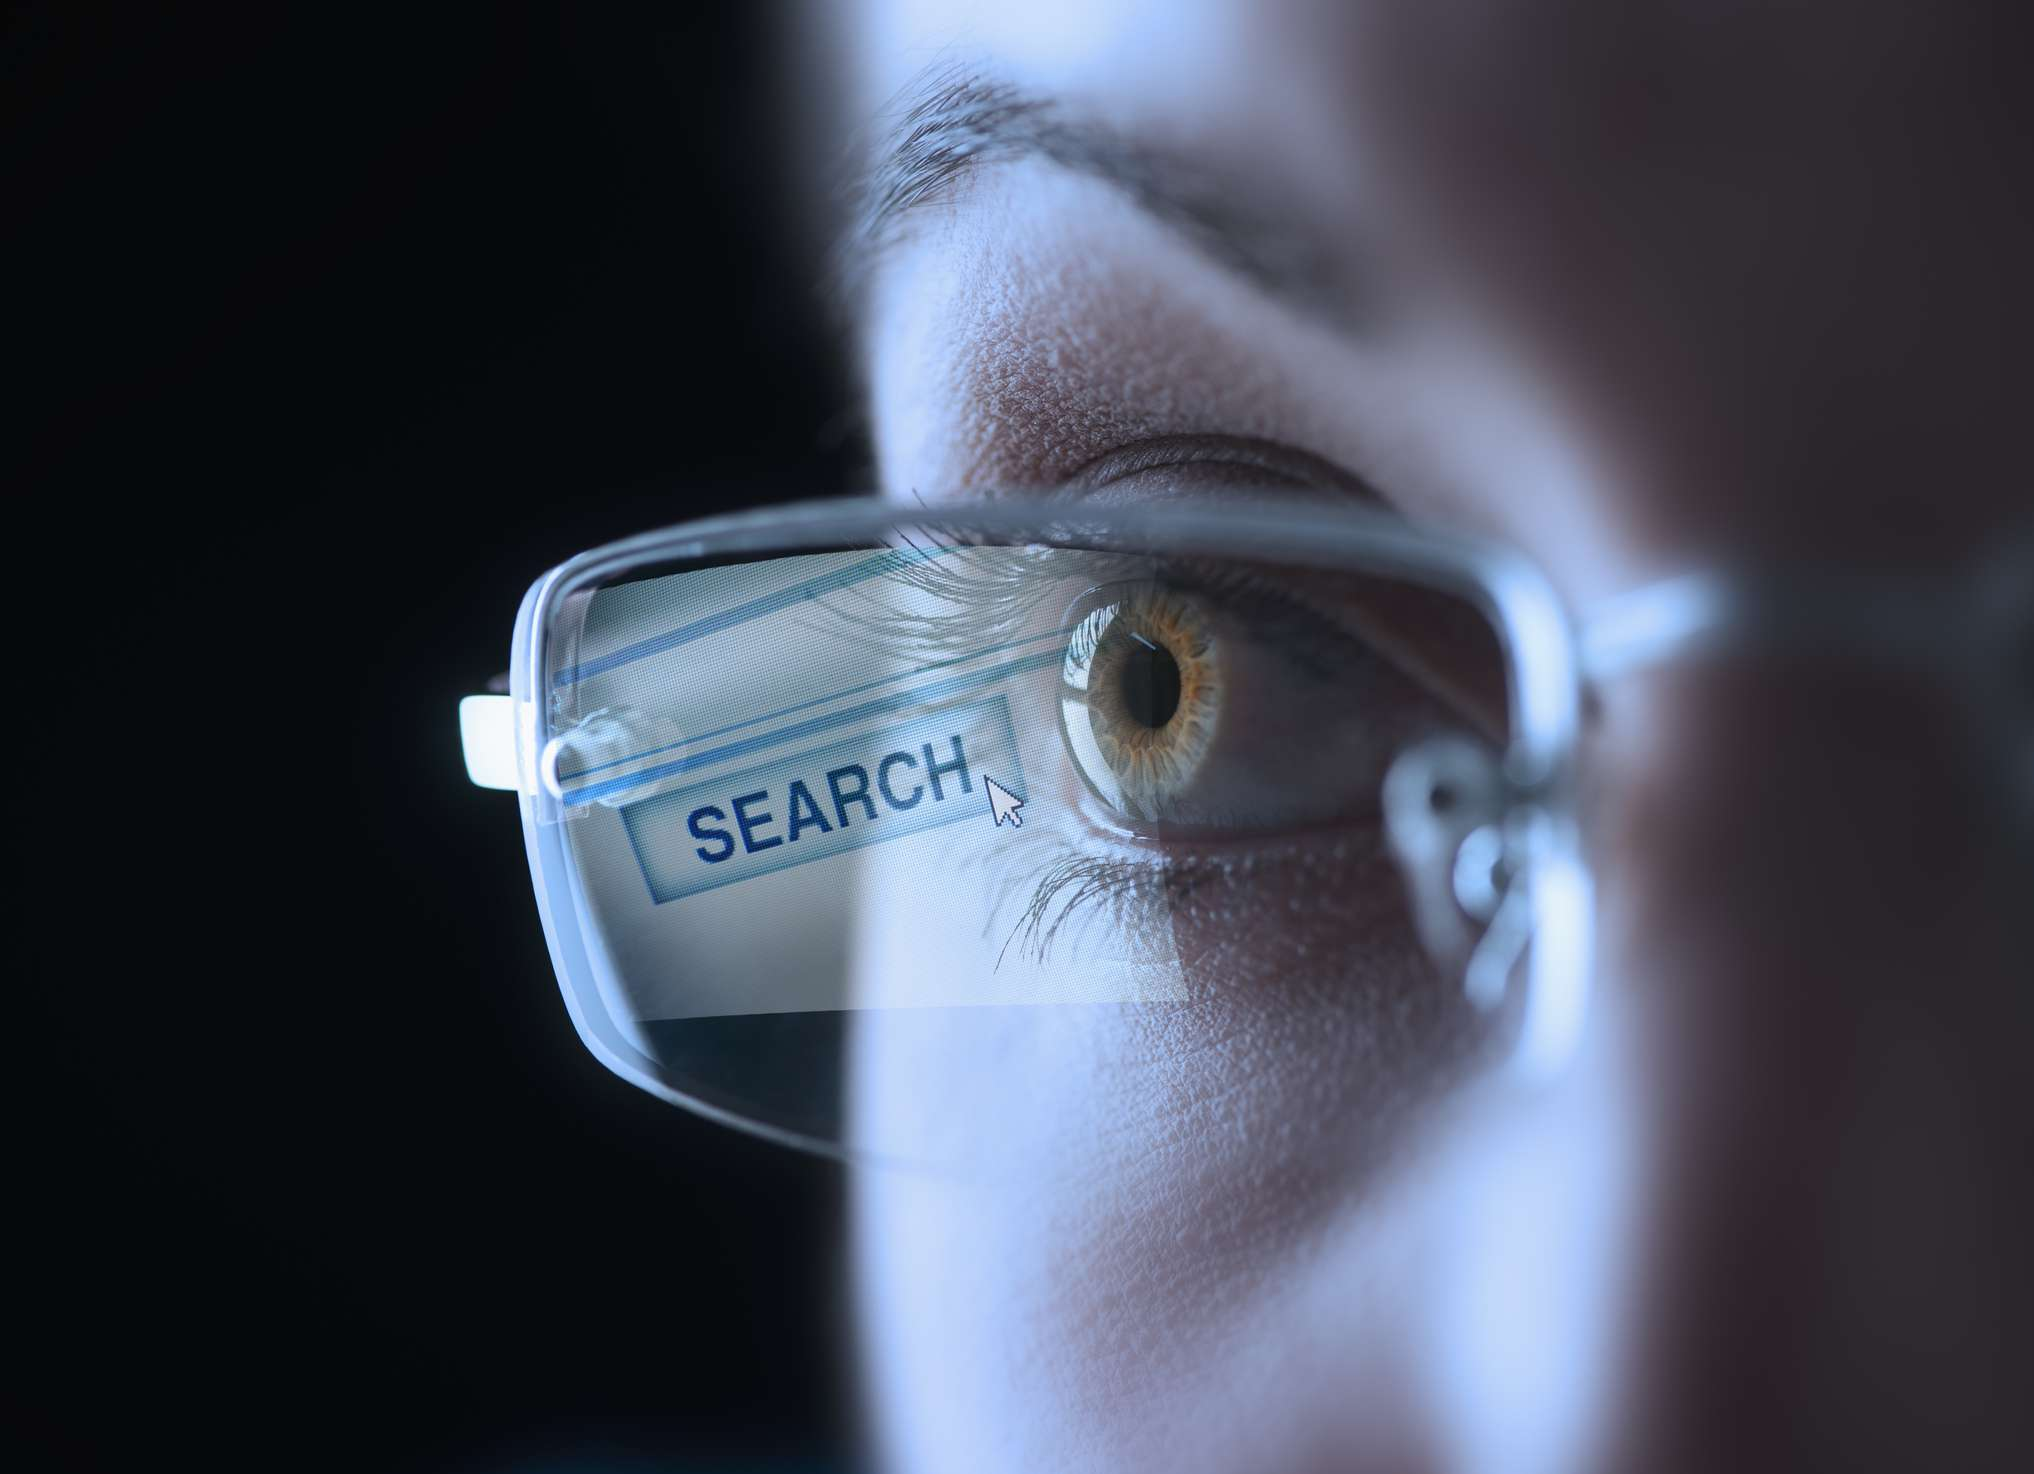 Coseup of a human eye, wearing glasses with a Search button reflecting on the lens.